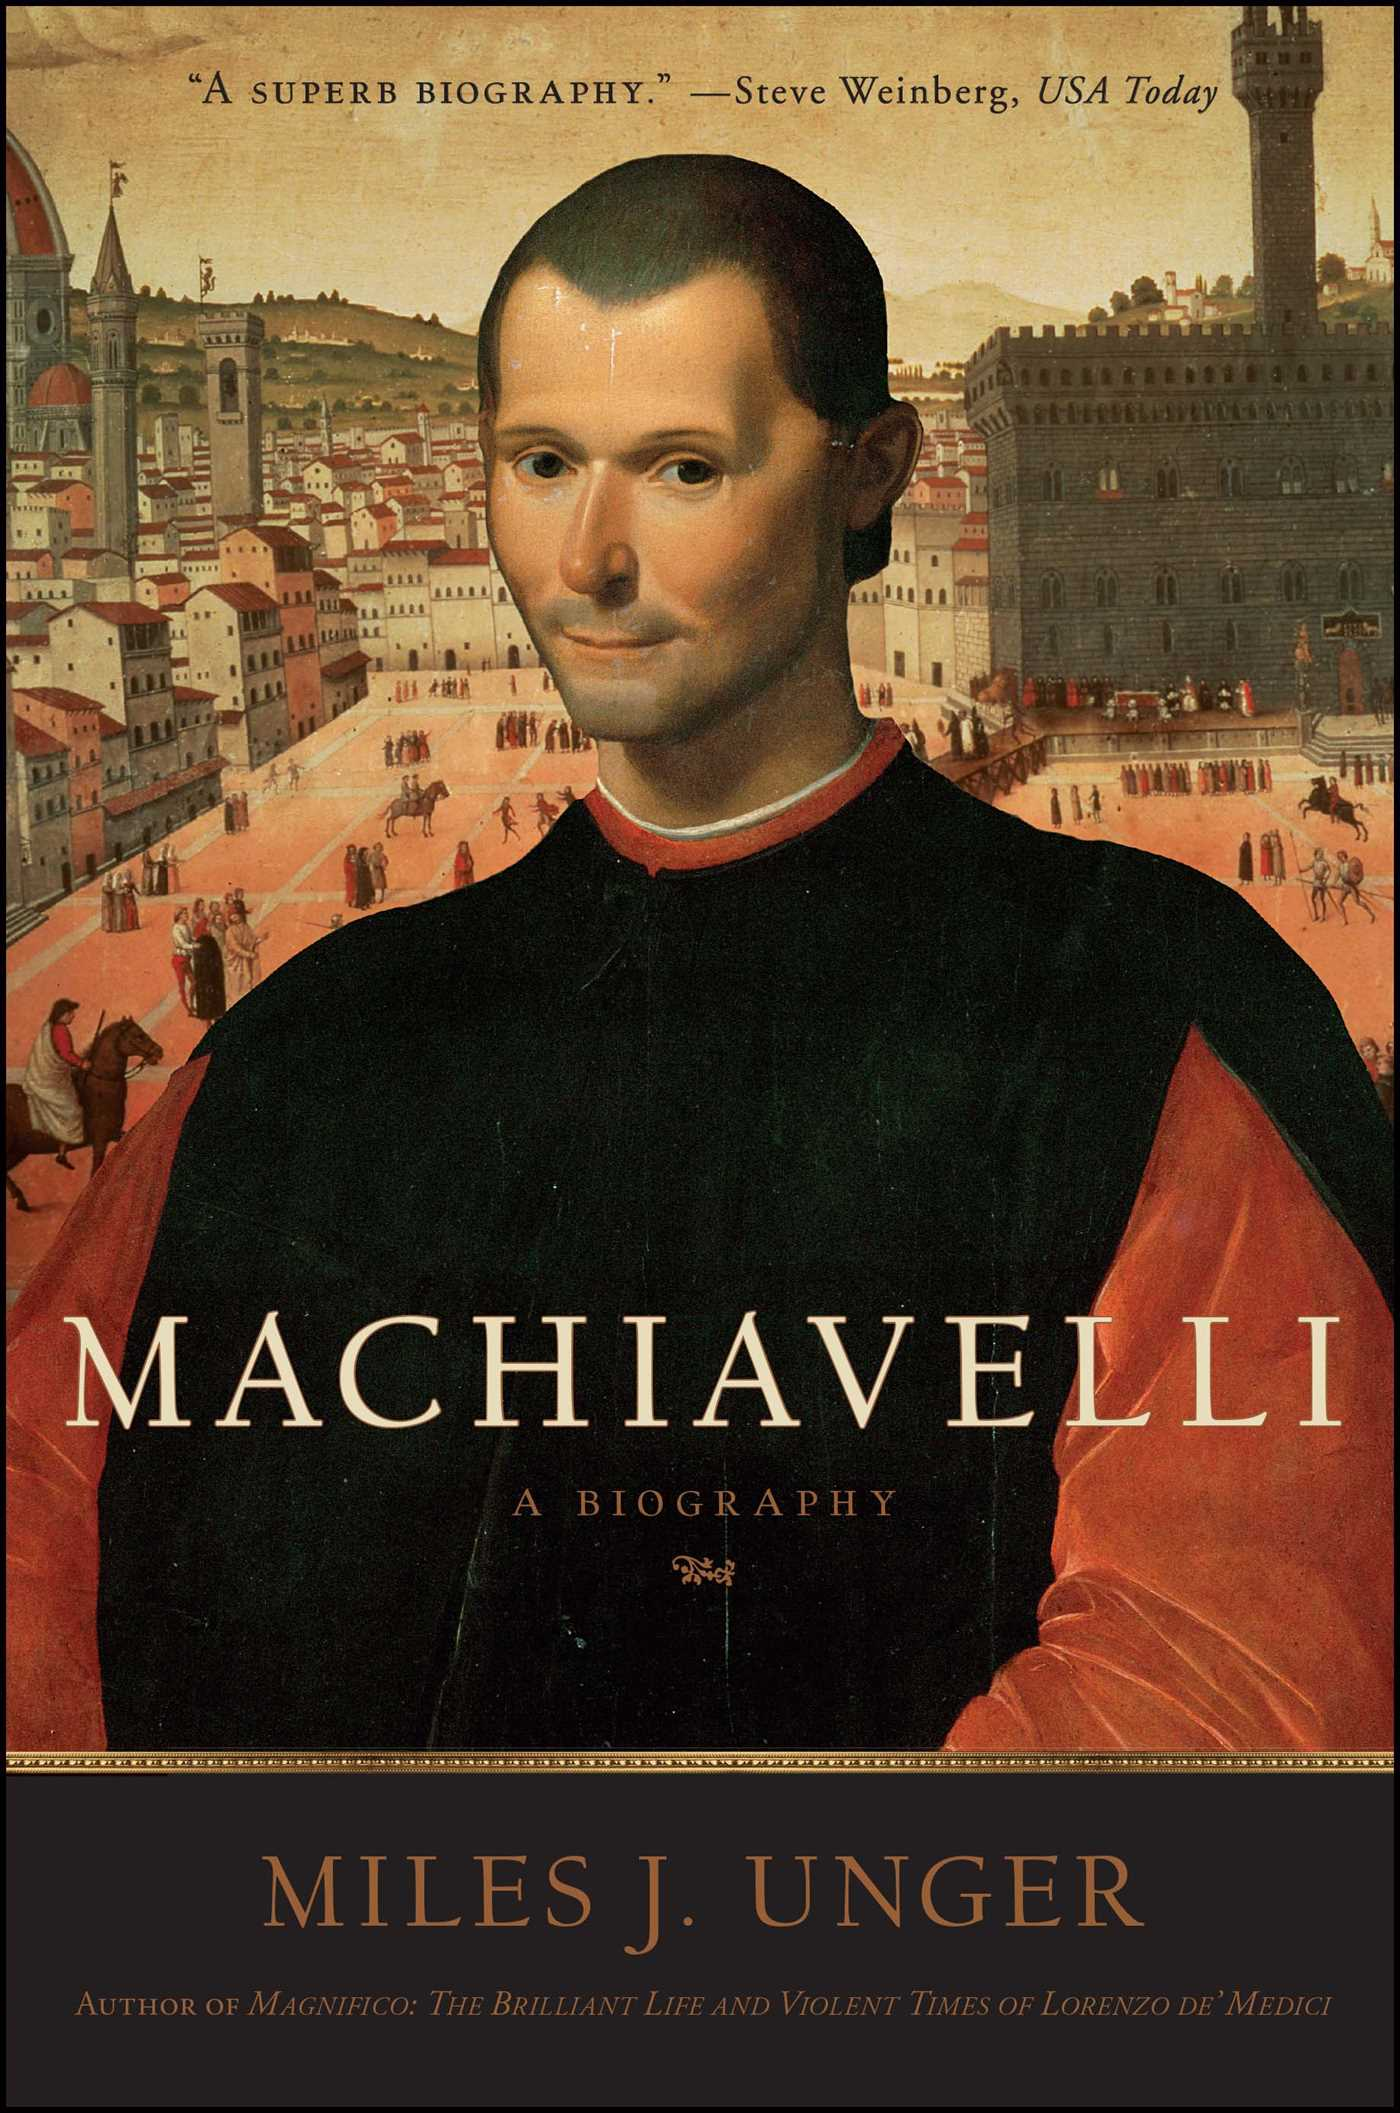 a literary analysis of politics in the prince by machiavelli Category: machiavelli prince title: free college essays - machiavelli's politics in  the prince  indeed it is a work of art, a literary masterpiece of sorts  essay  about the machiavellian analysis of politics - written around 1513, niccolò.